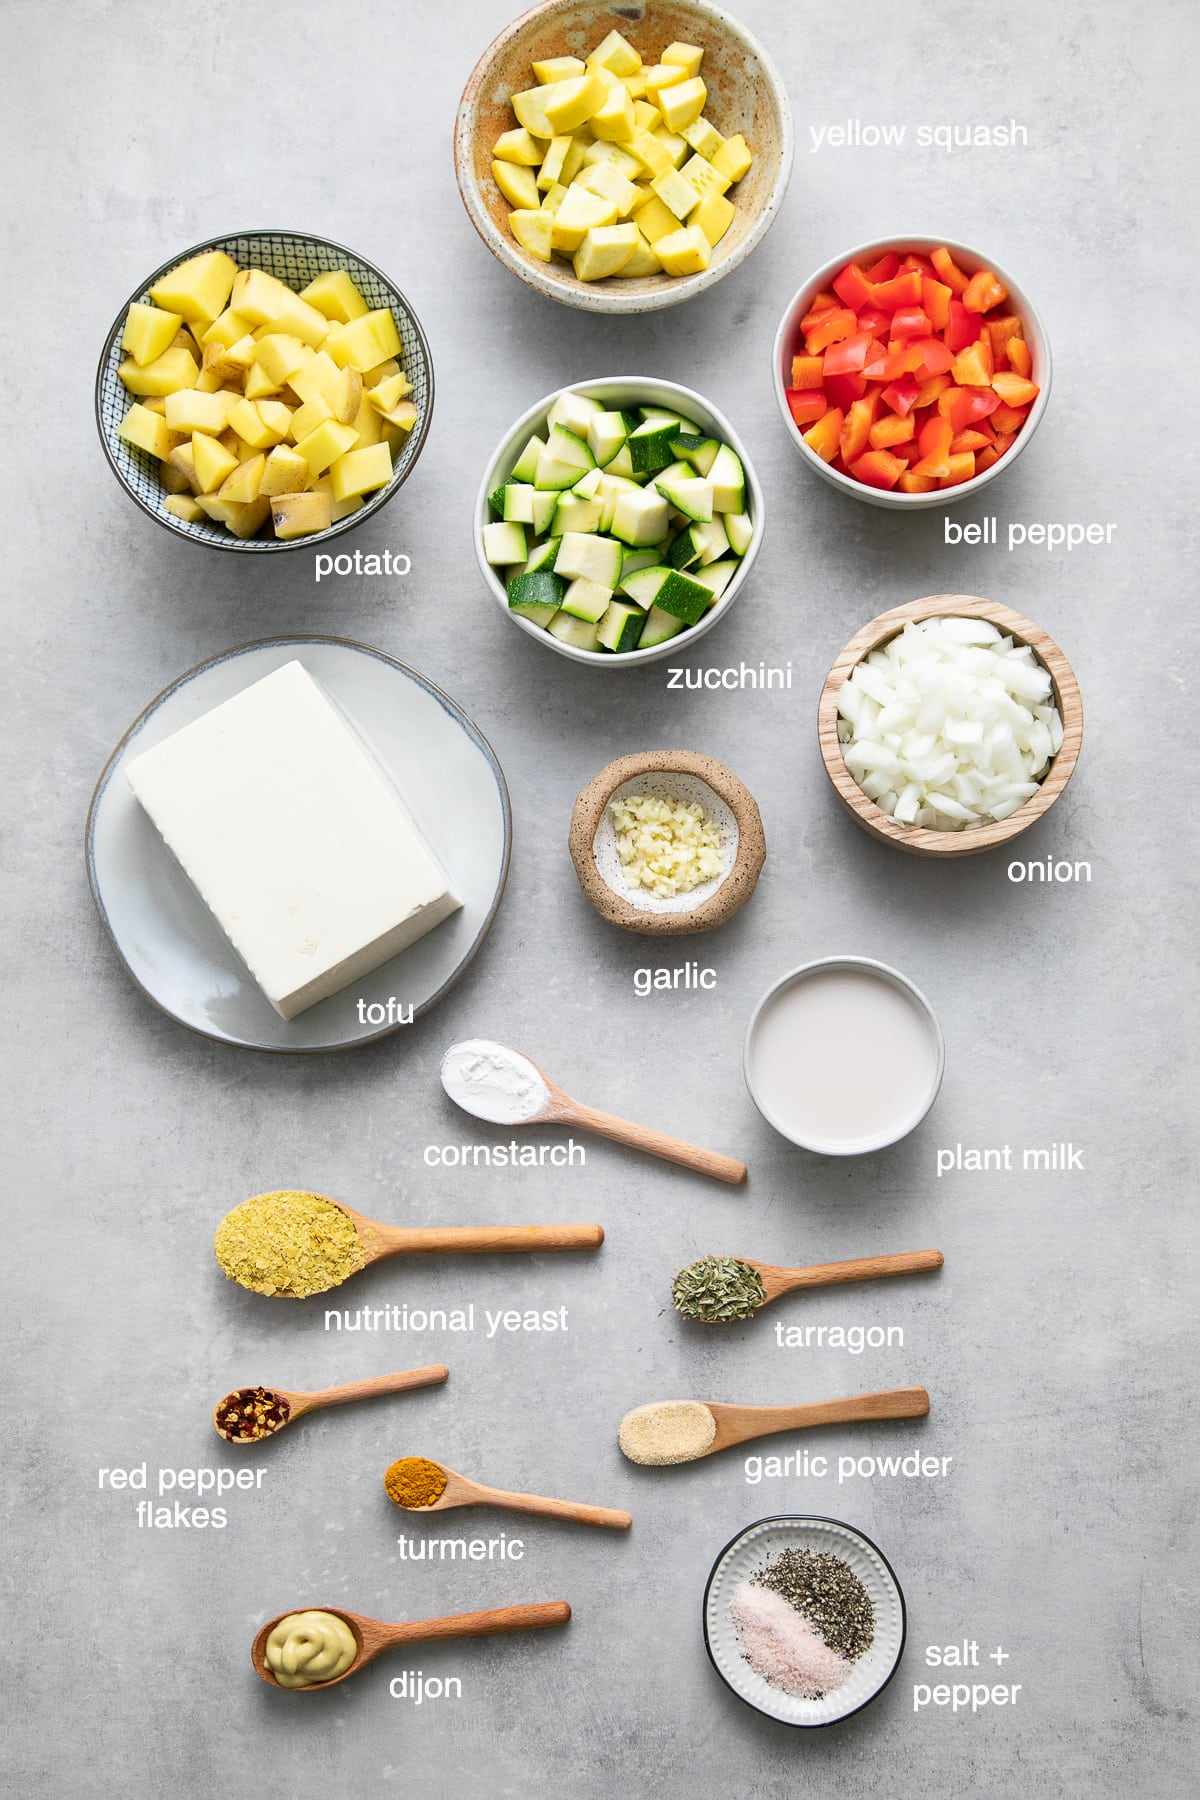 top down view showing the ingredients used to make vegetable vegan frittata recipe.